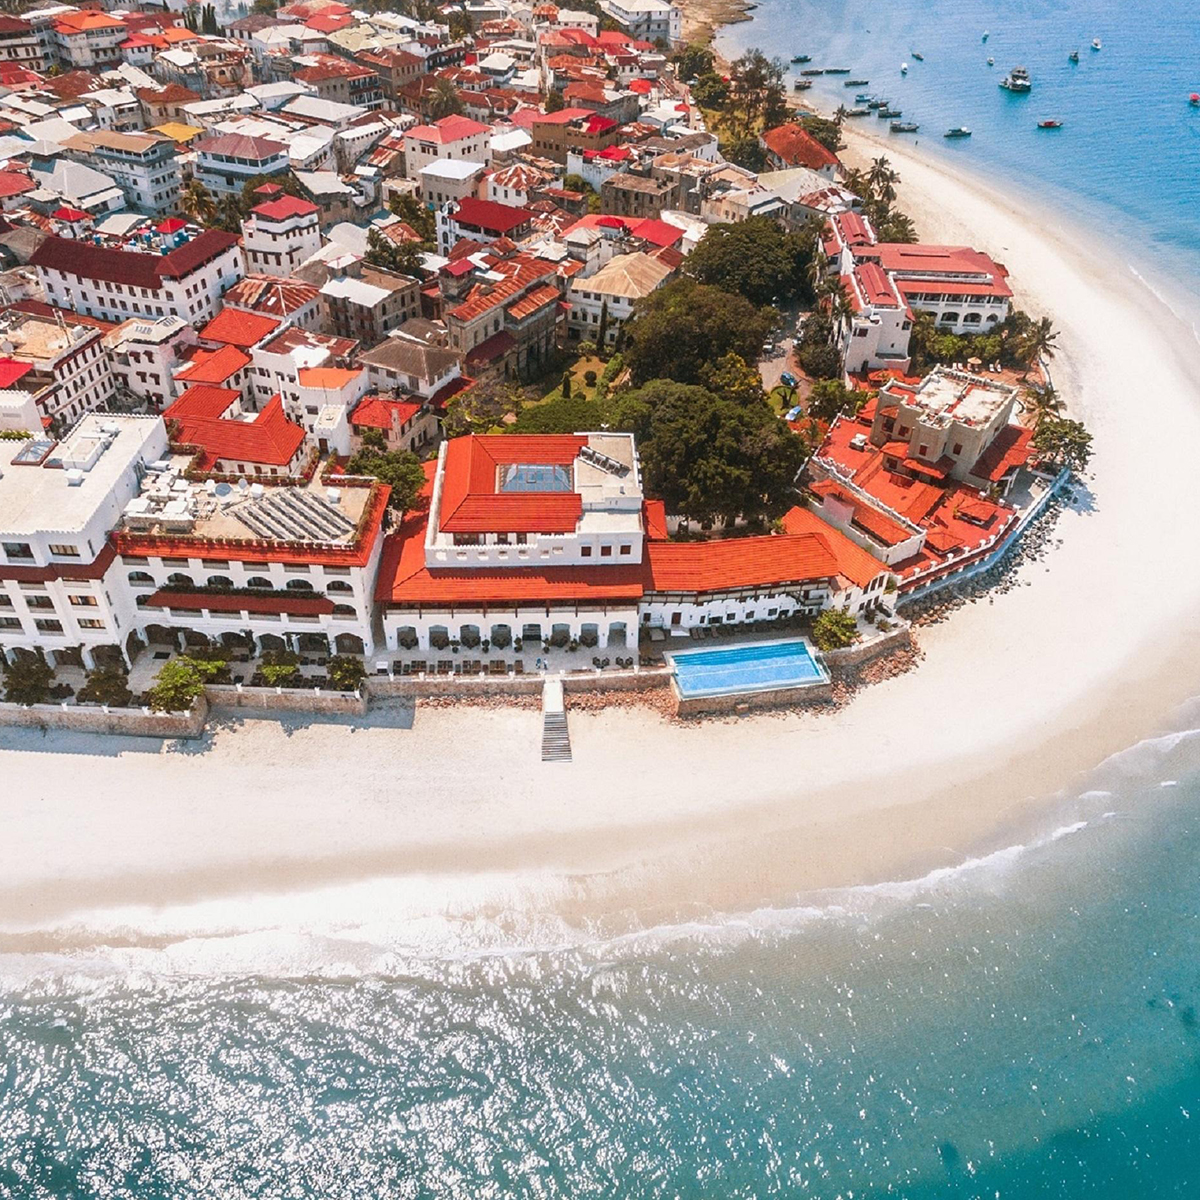 HOTELS IN ZANZIBAR CITY